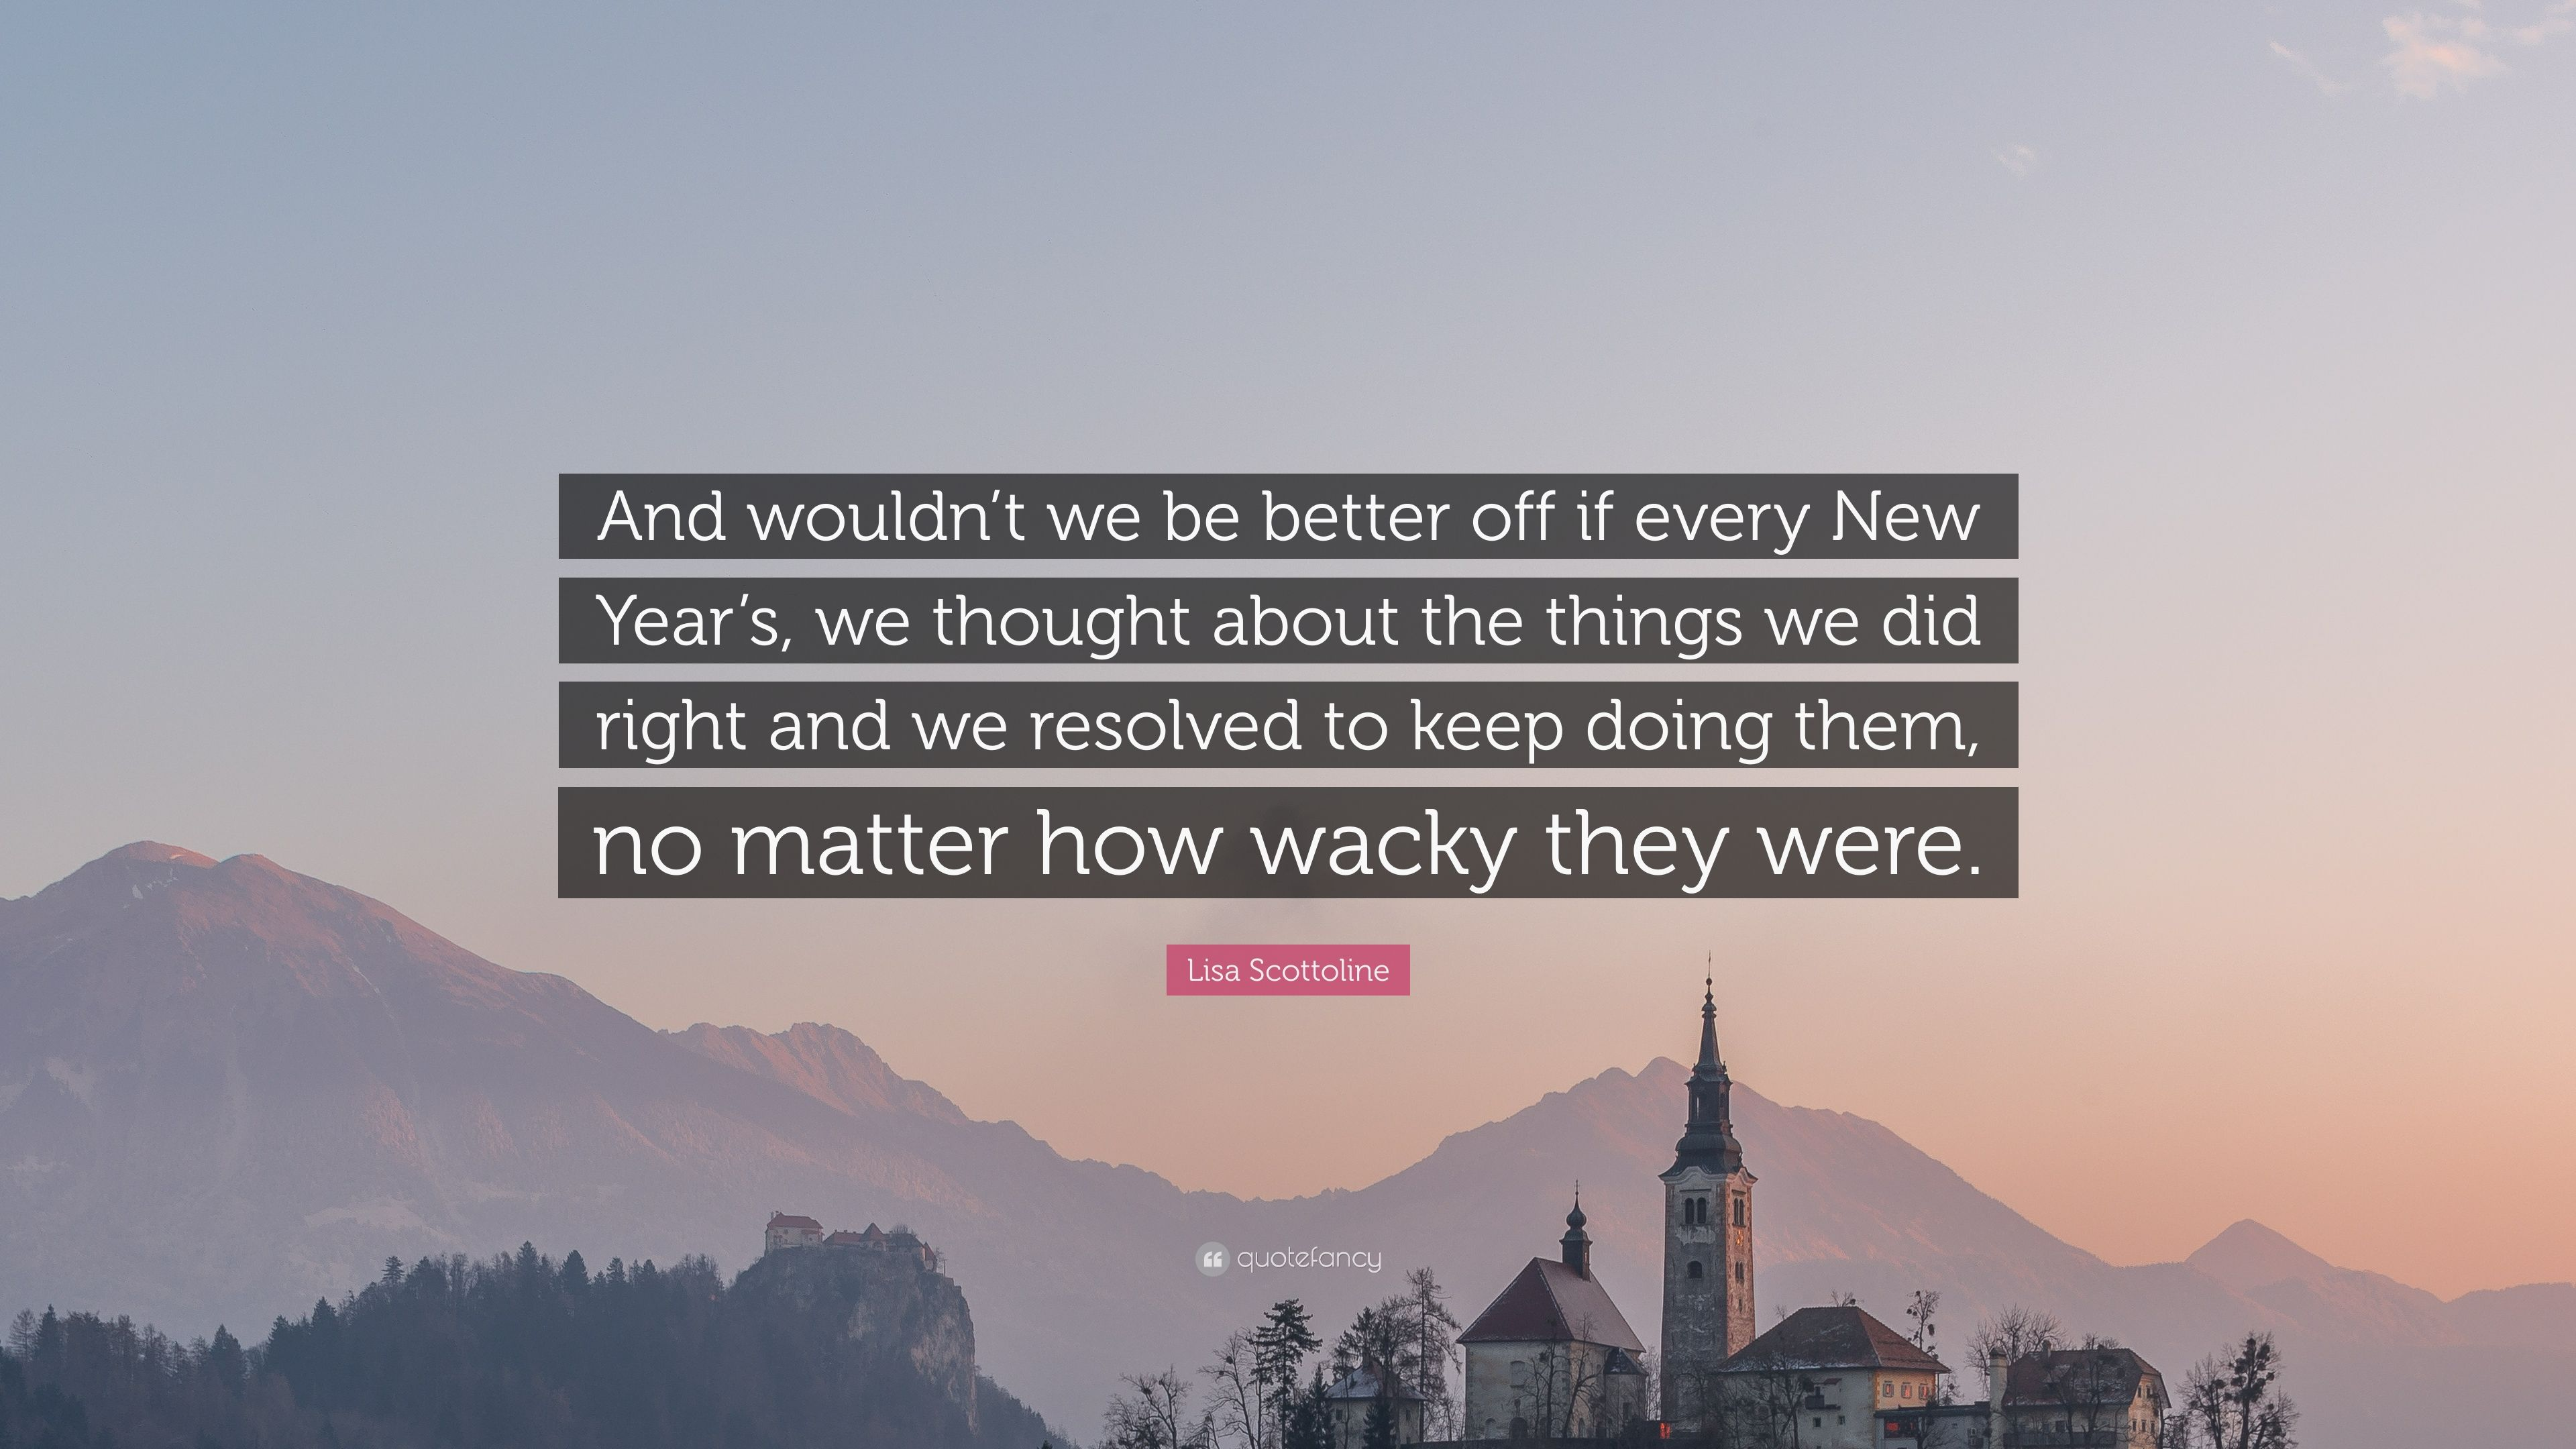 lisa scottoline quote and wouldnt we be better off if every new